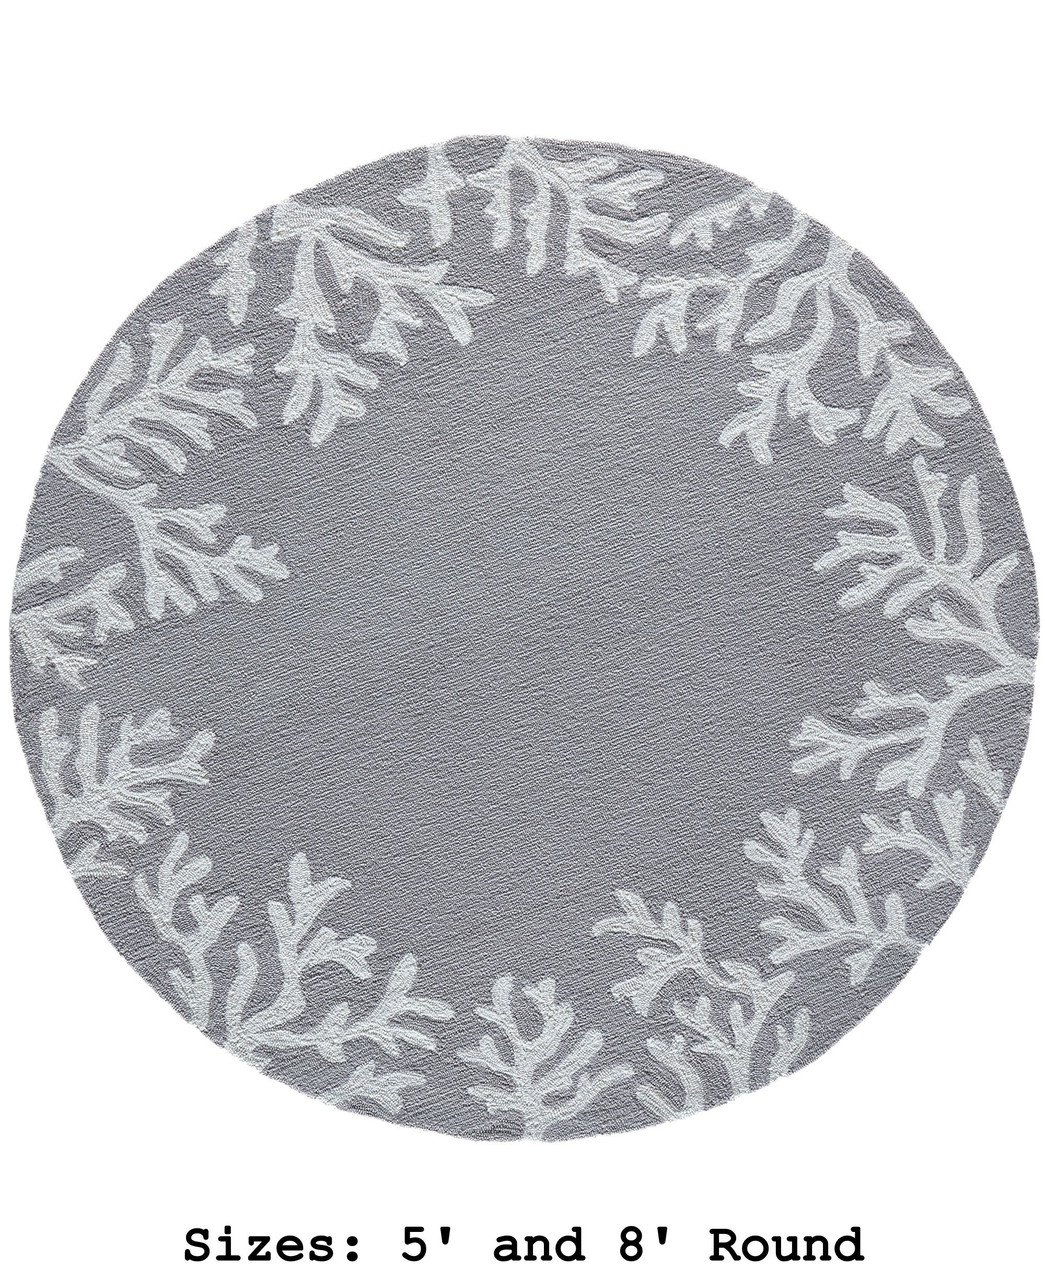 Capri Coral Border Indoor/Outdoor Rug -  Silver - Round